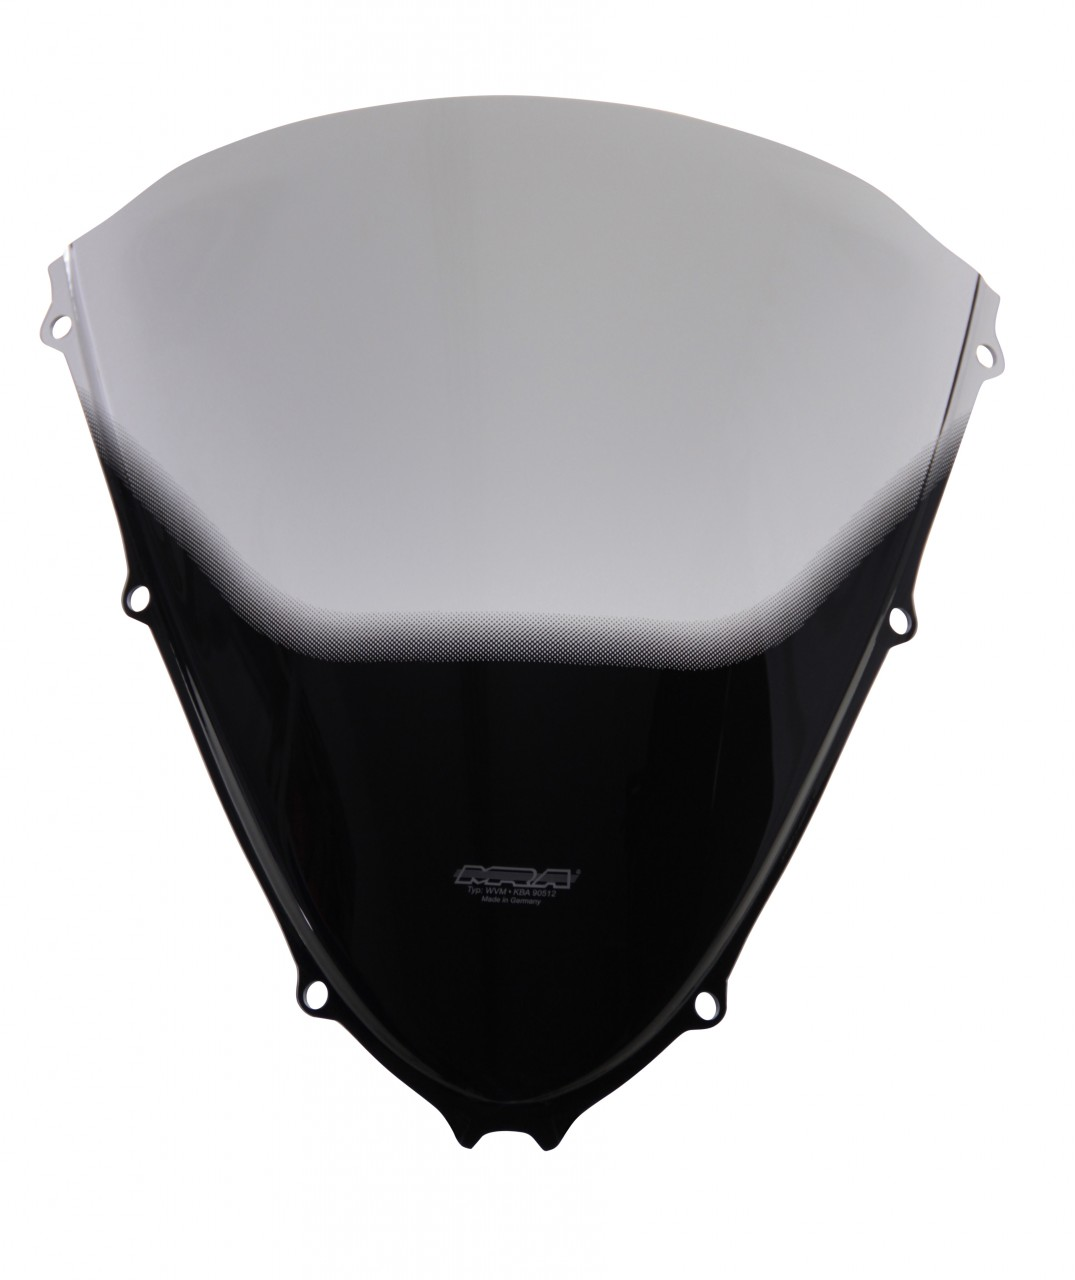 "ZZR 1400 / ZX 14 R - Originally-shaped windshield ""O"" 2006- - Image 2"